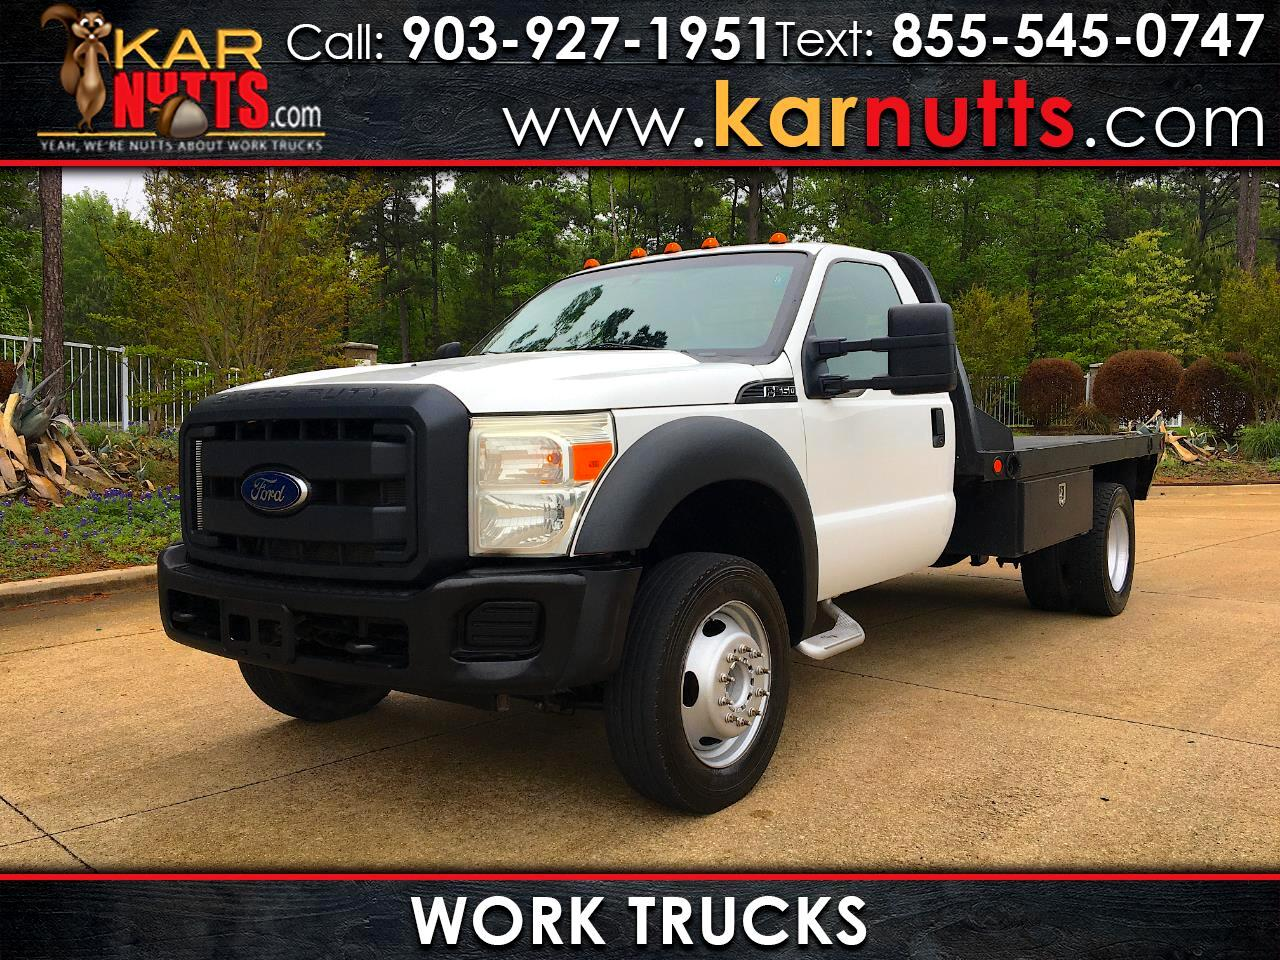 Ford F-550 Regular Cab DRW 2WD 2012